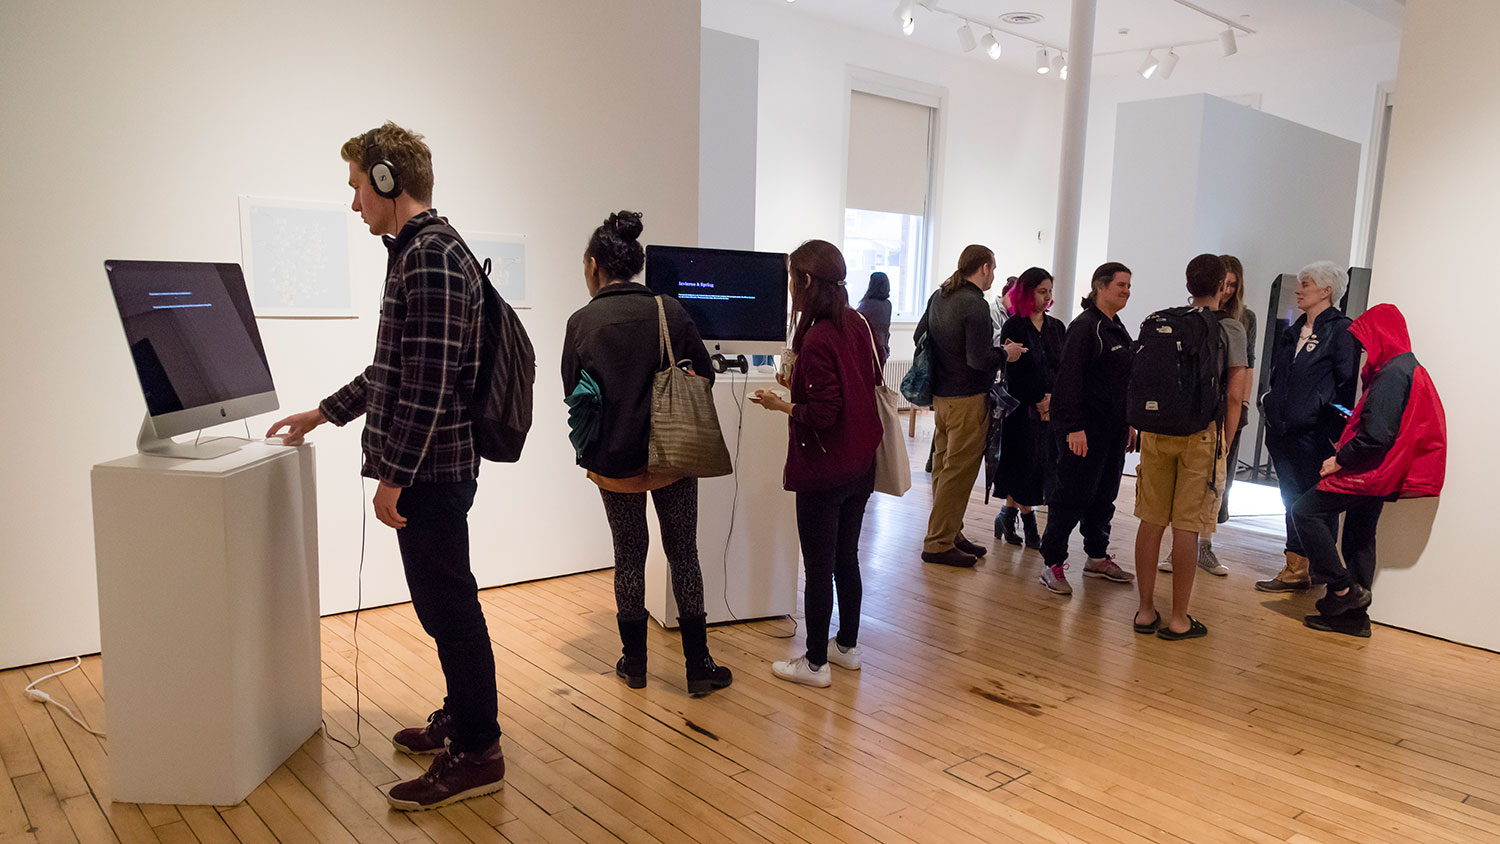 Gallery goers mingle around pedestals with TVs set up on top